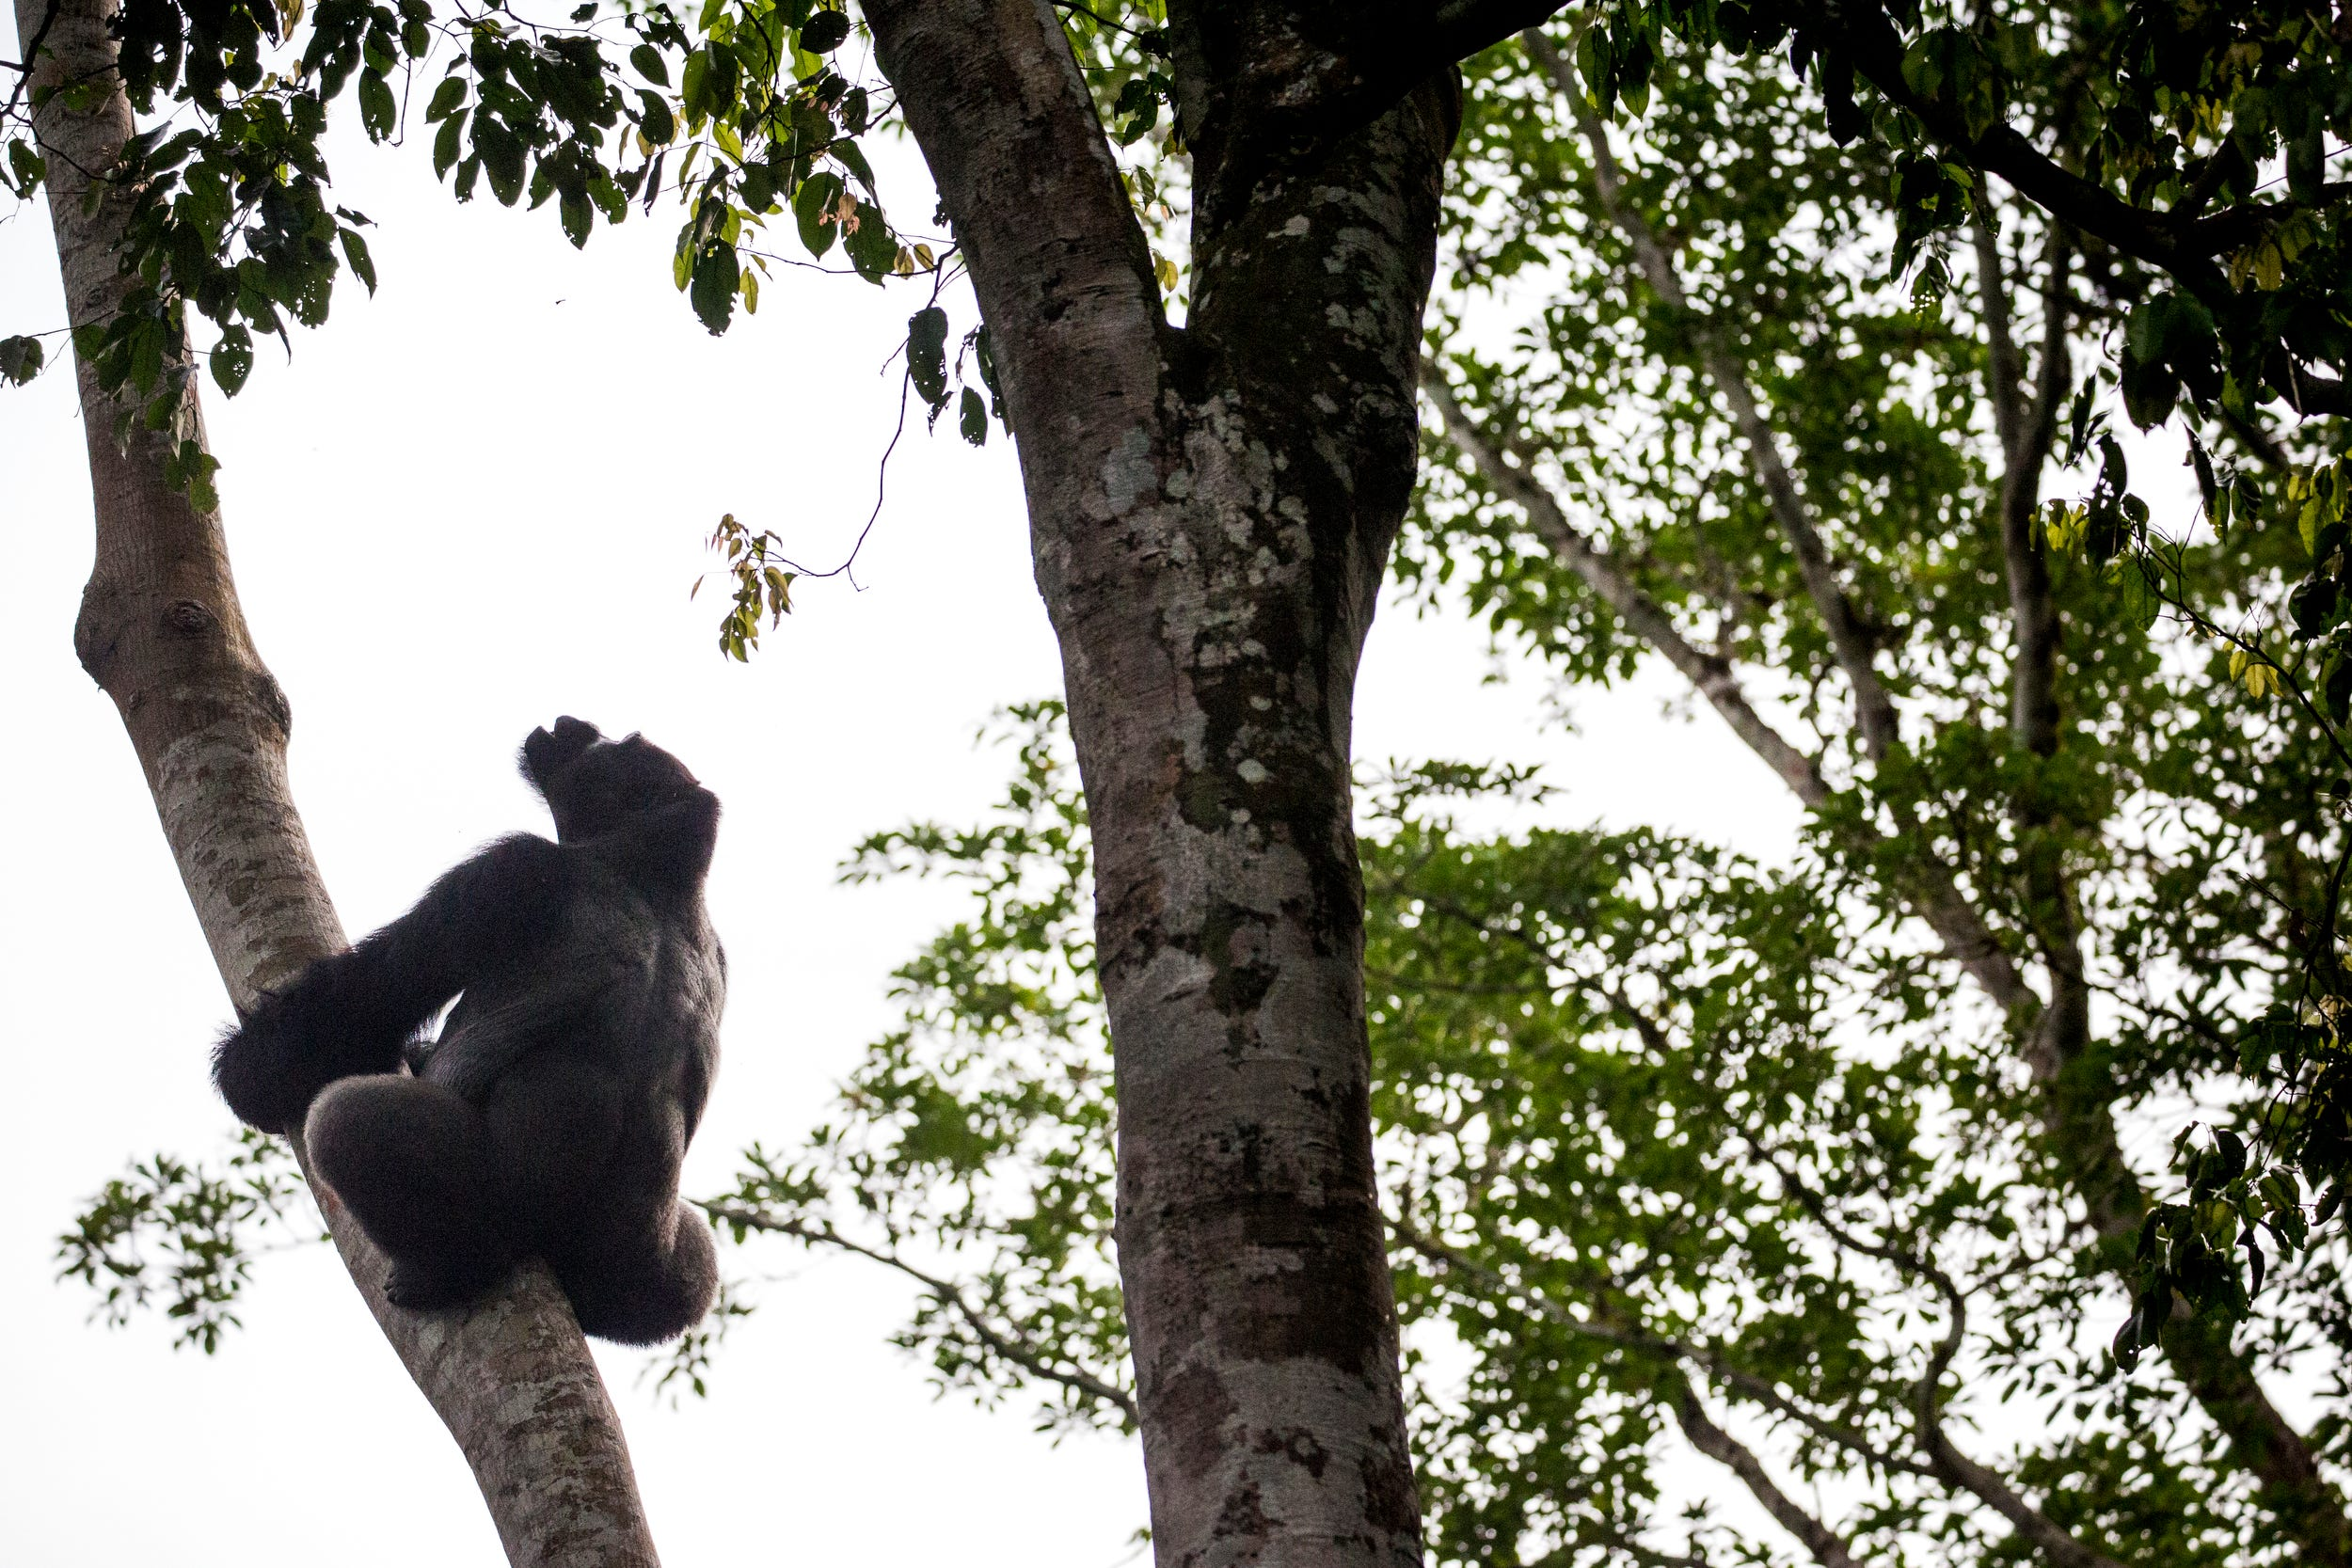 Loya, a silverback gorilla, climbs a tree at the Goualougo Triangle. Researchers and trackers habituate the gorillas to human presence, so they can follow the groups to observe and record their behavior on a daily basis.